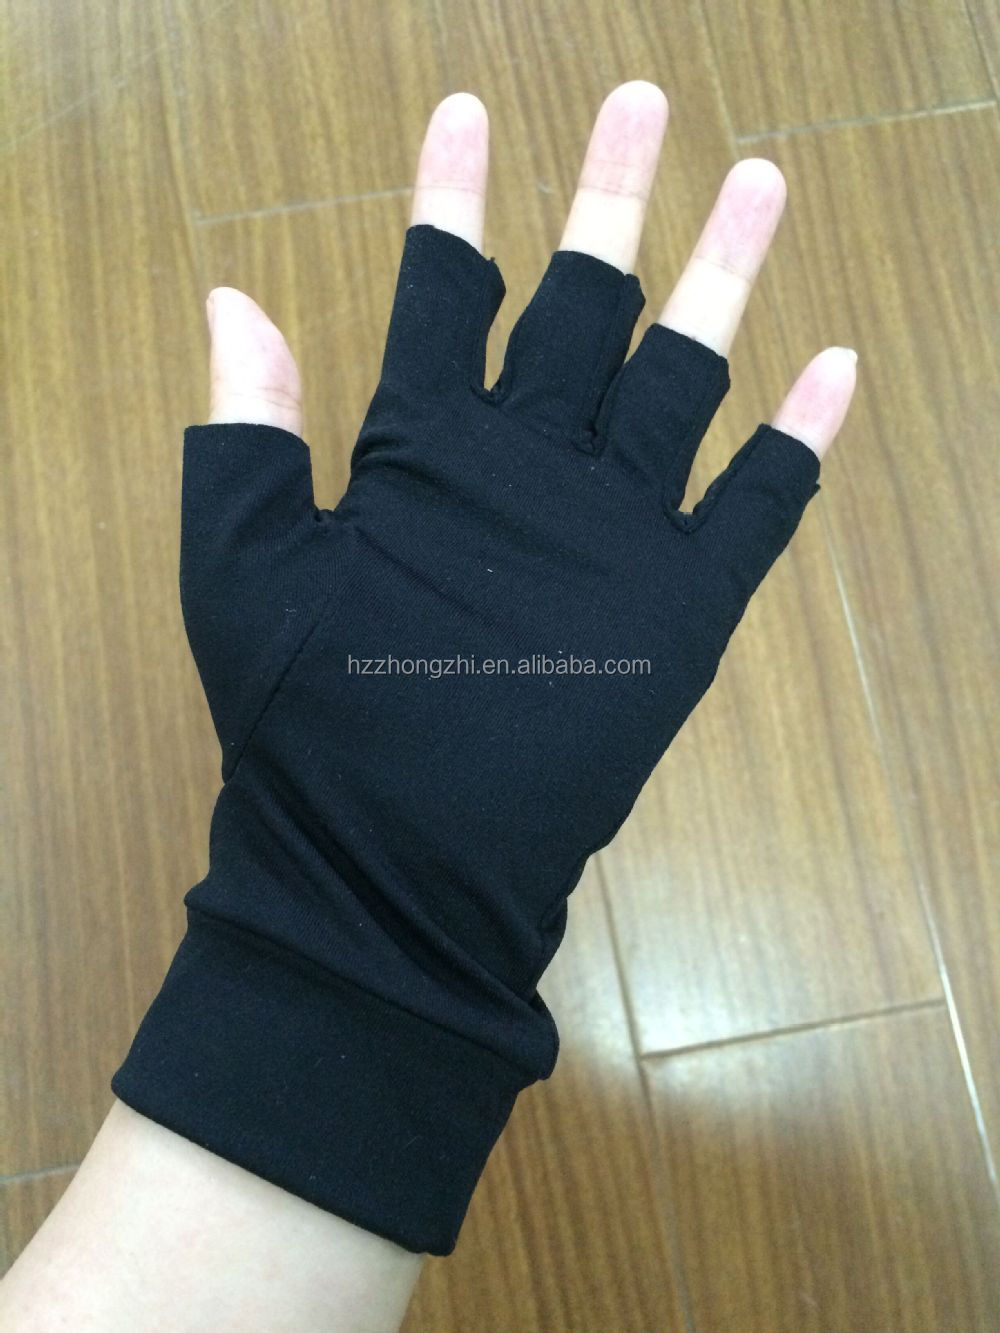 Fingerless gloves asda - Diabetic Gloves Diabetic Gloves Suppliers And Manufacturers At Alibaba Com